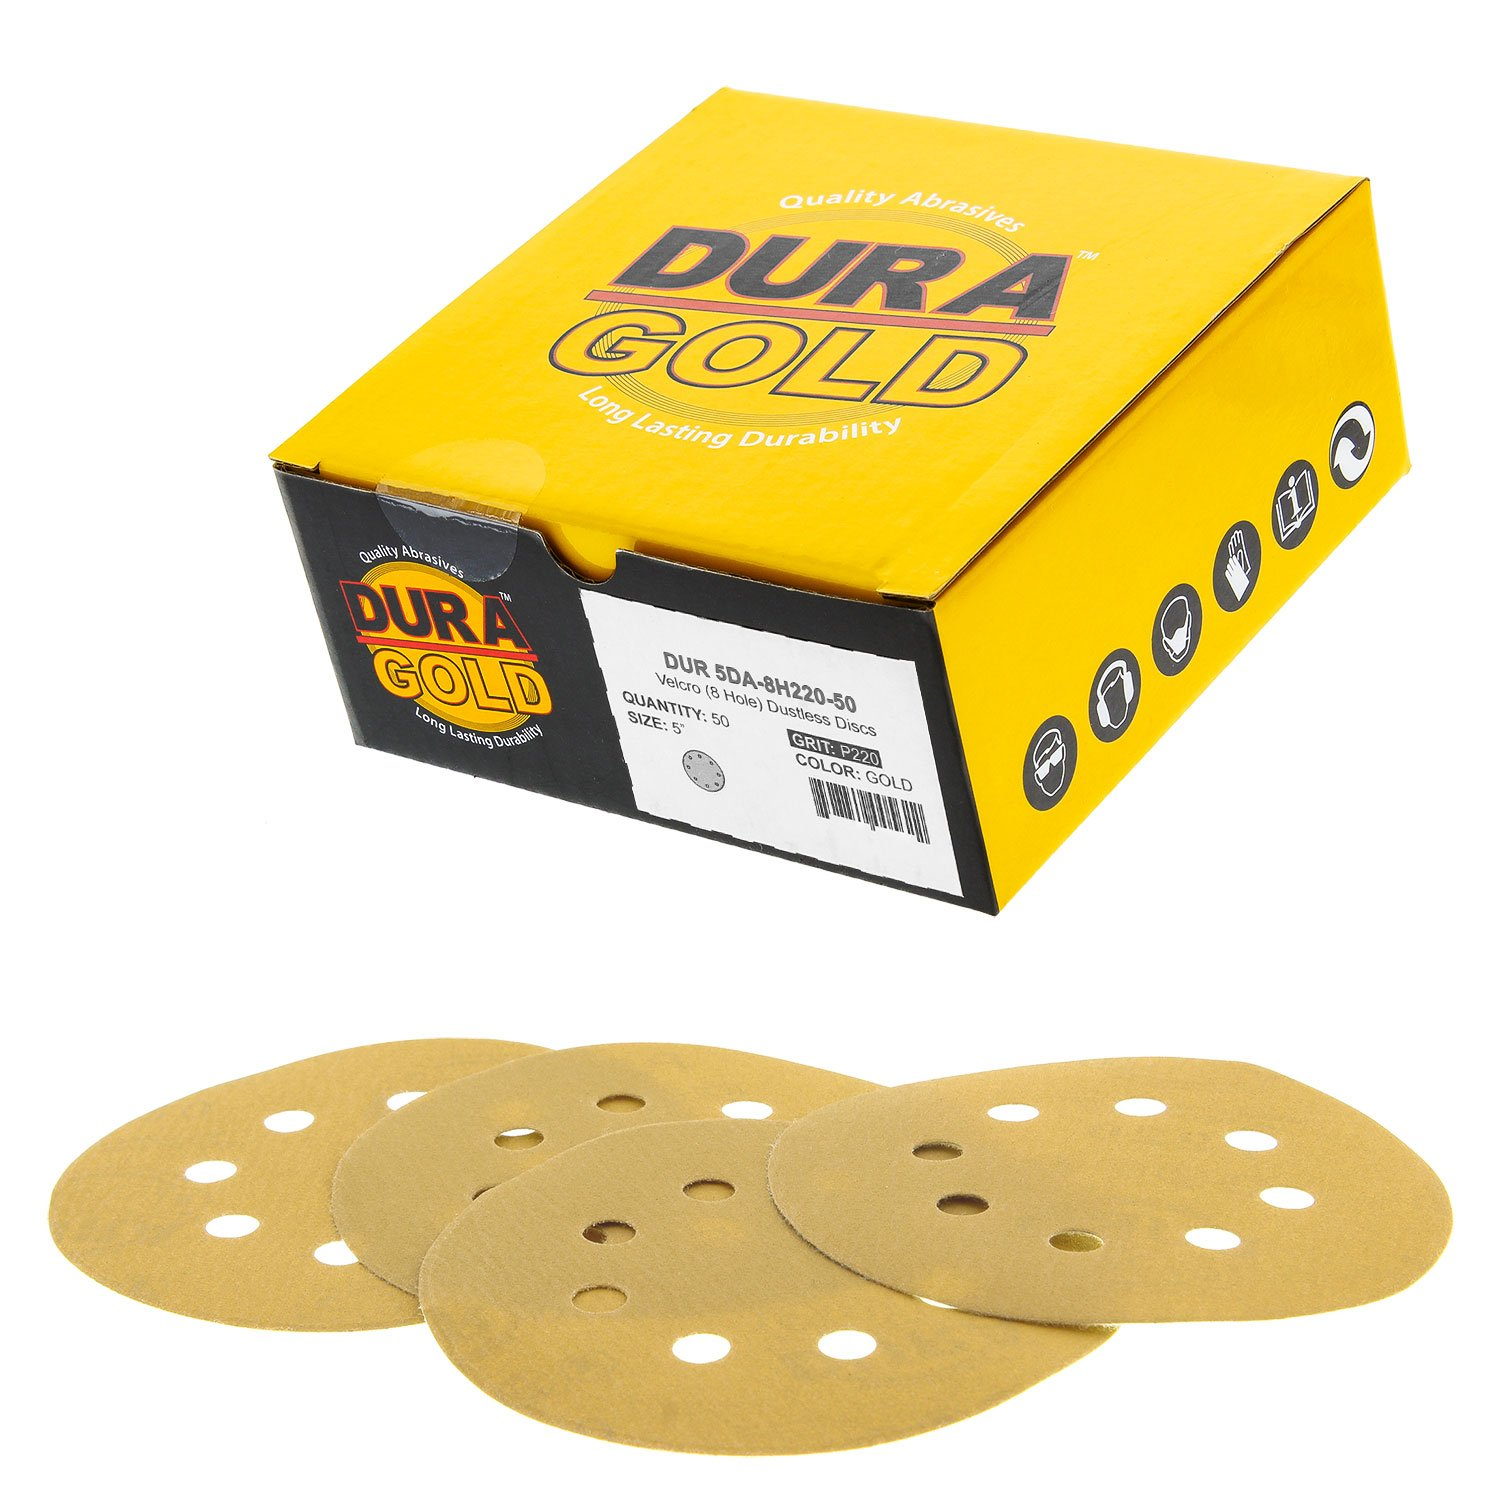 """Dura-Gold Premium - 220 Grit - 5"""" Gold Sanding Discs - 8-Hole Dustless Hook and Loop for DA Sander - Box of 50 Finishing Sandpaper Discs for Woodworking or Automotive 71W-2M2BjQrL"""